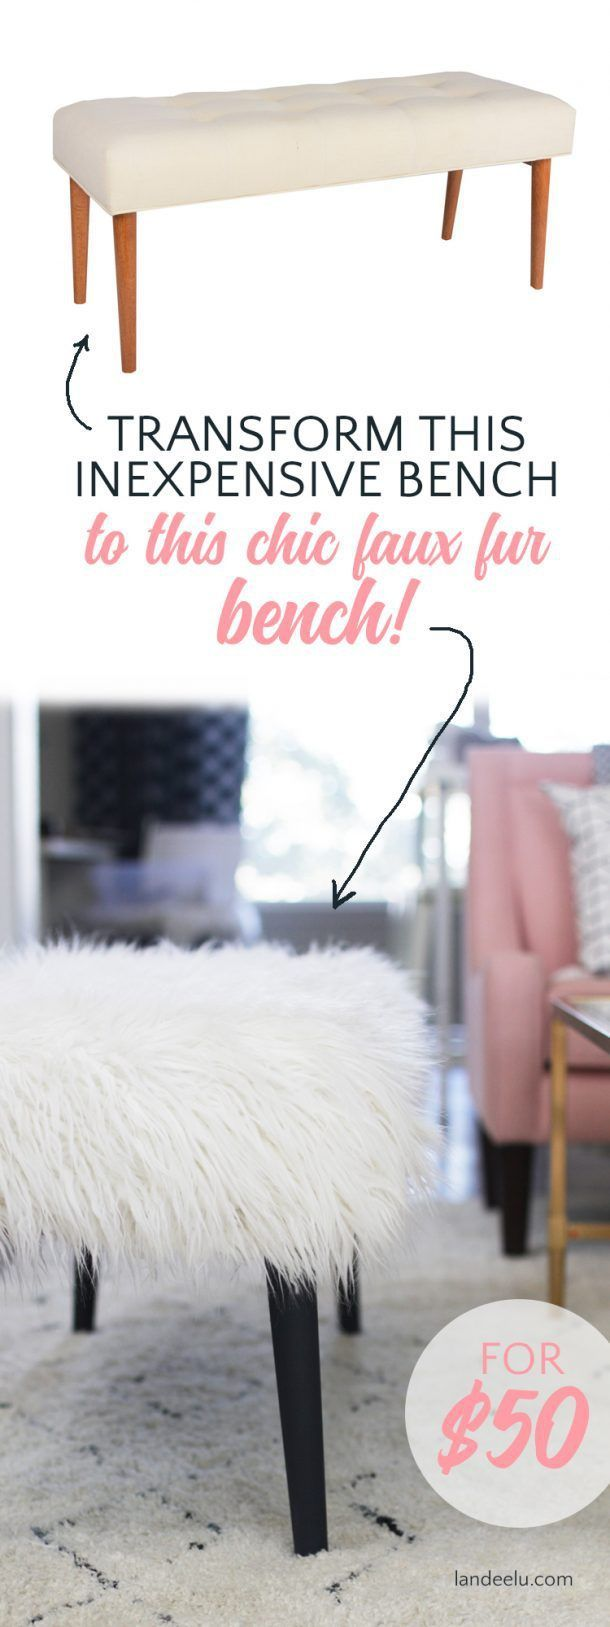 Easily transform an inexpensive upholstered bench into a chic faux fur bench wit...